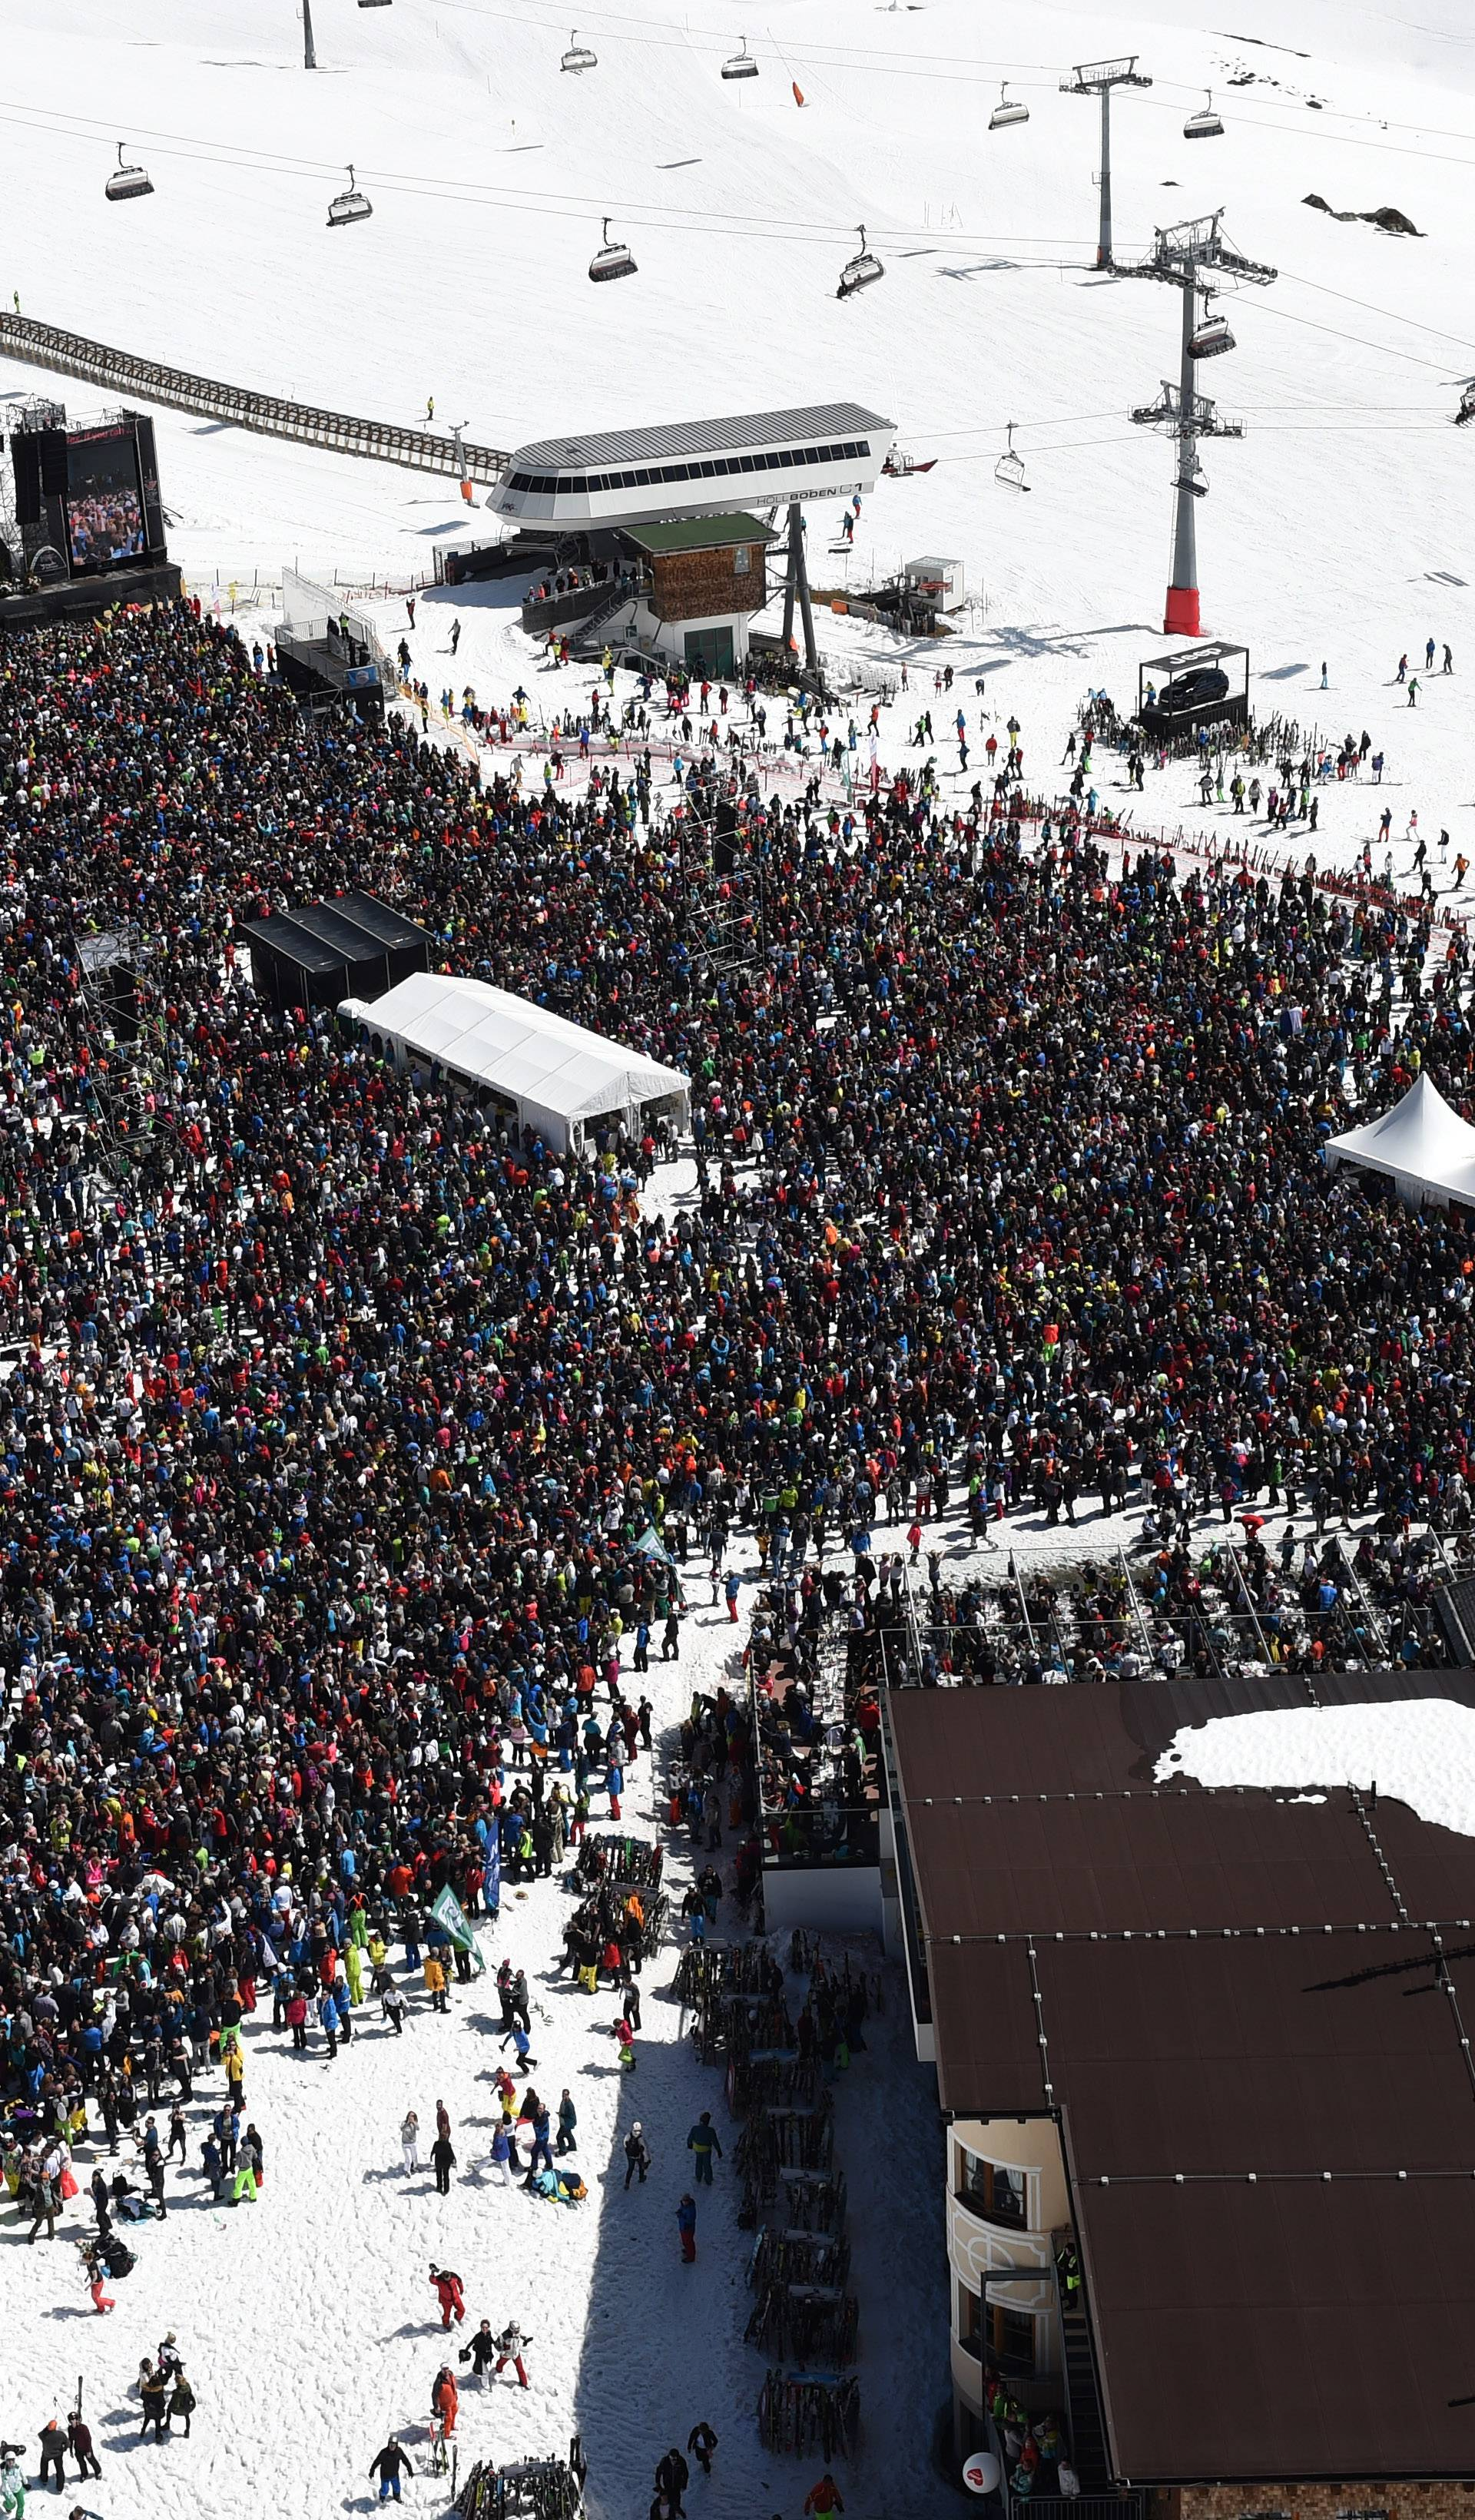 Helene Fischer at Top of the Mountain Closing concert